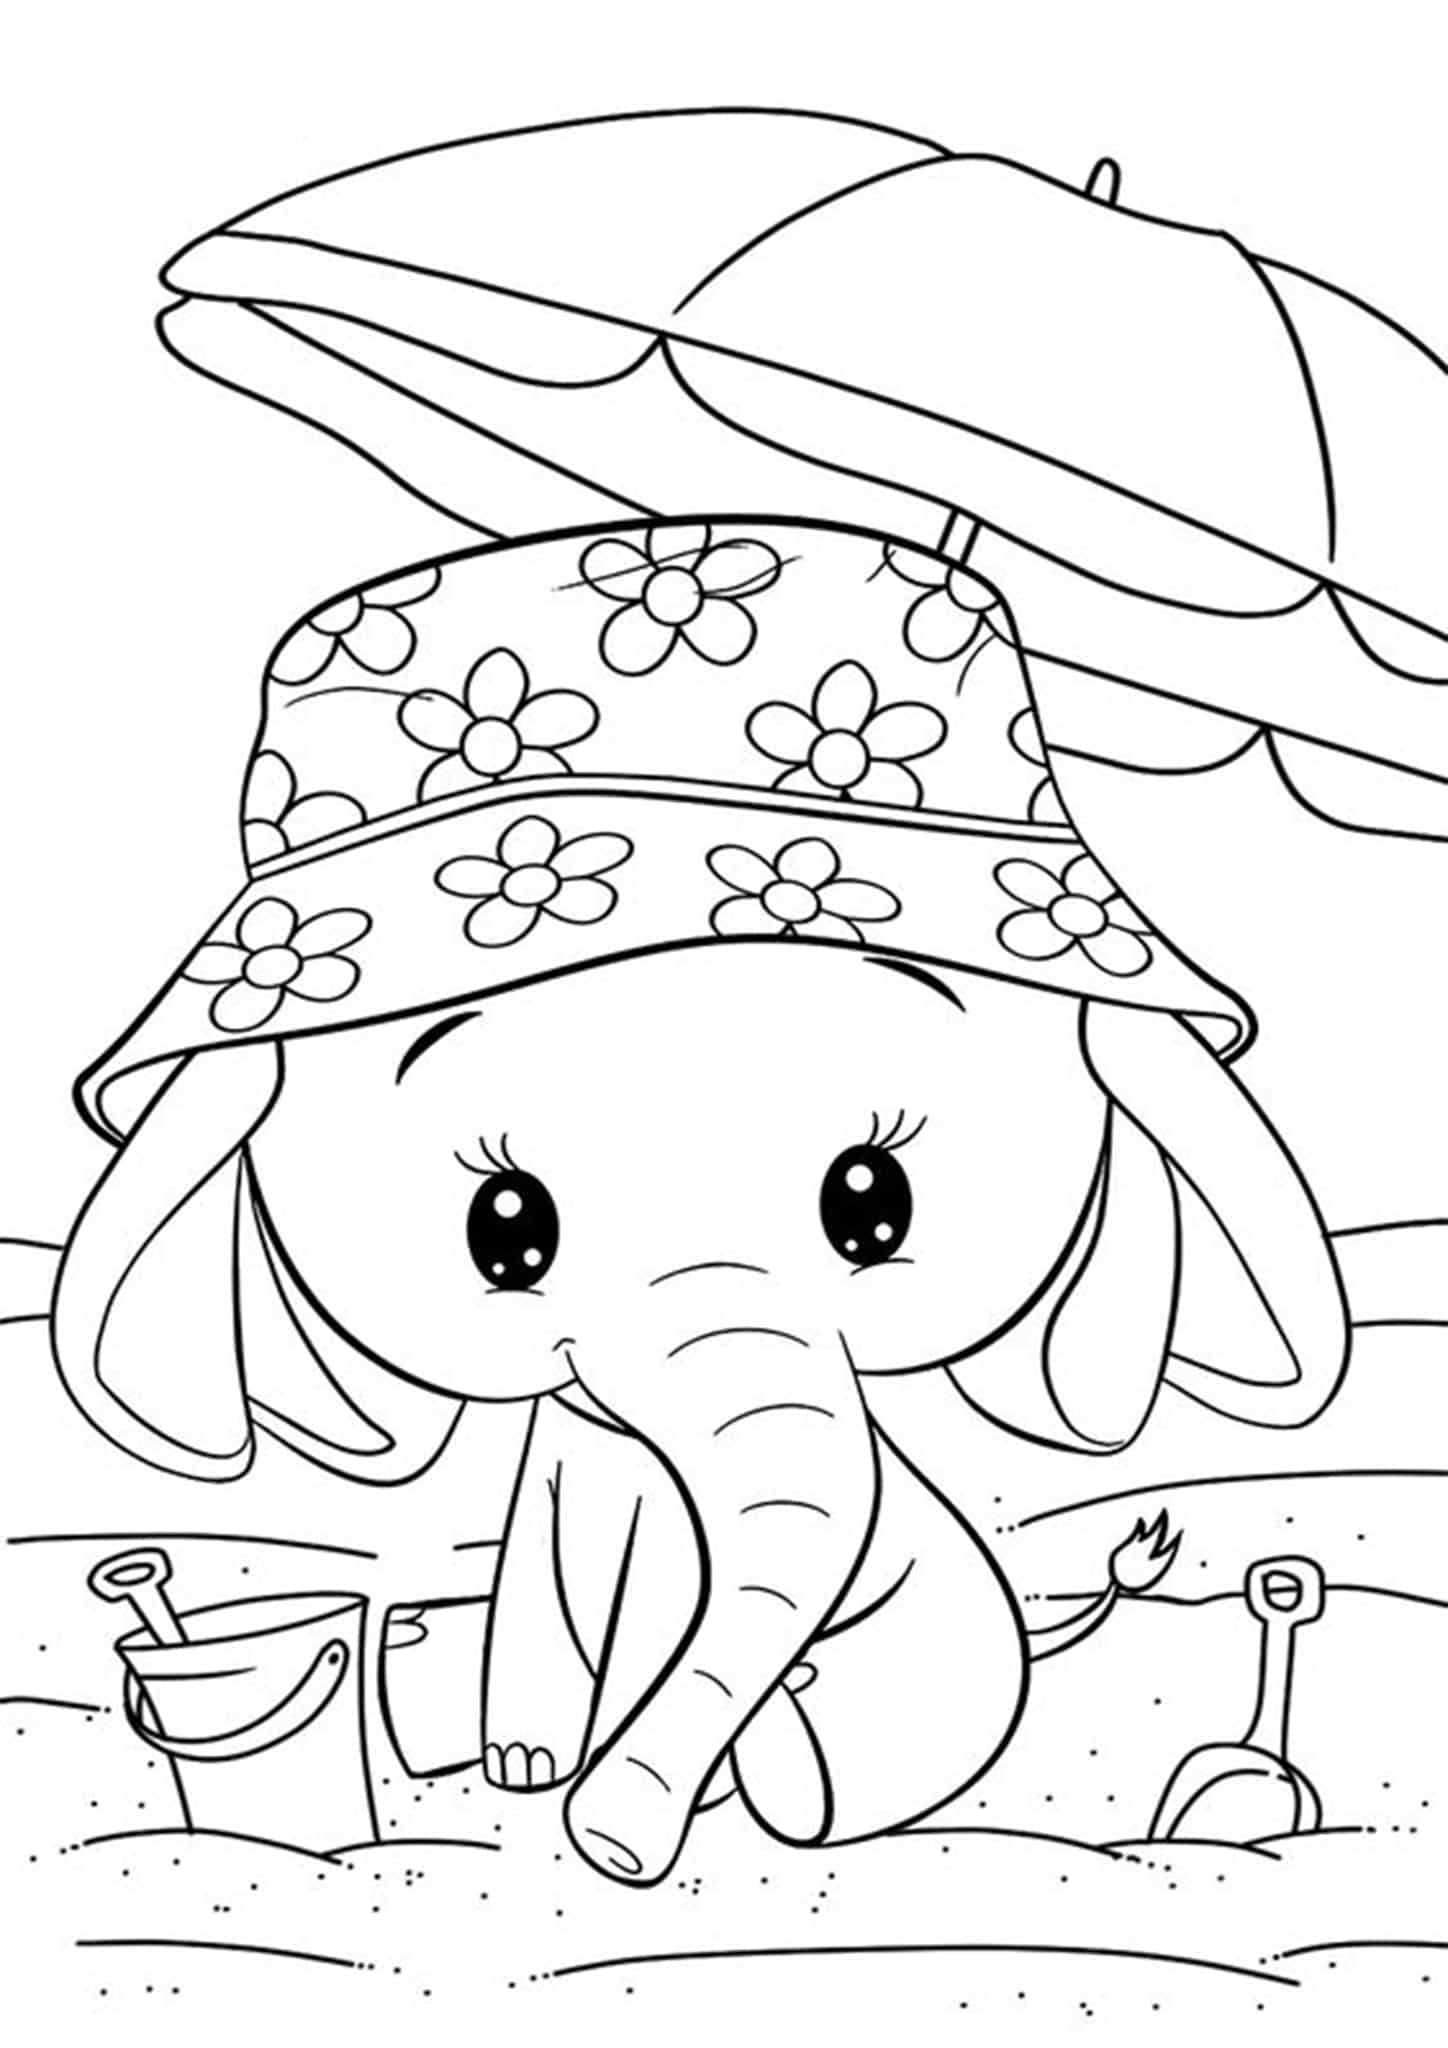 coloring book elephant images get this hard elephant coloring pages for adults 13579 coloring book elephant images